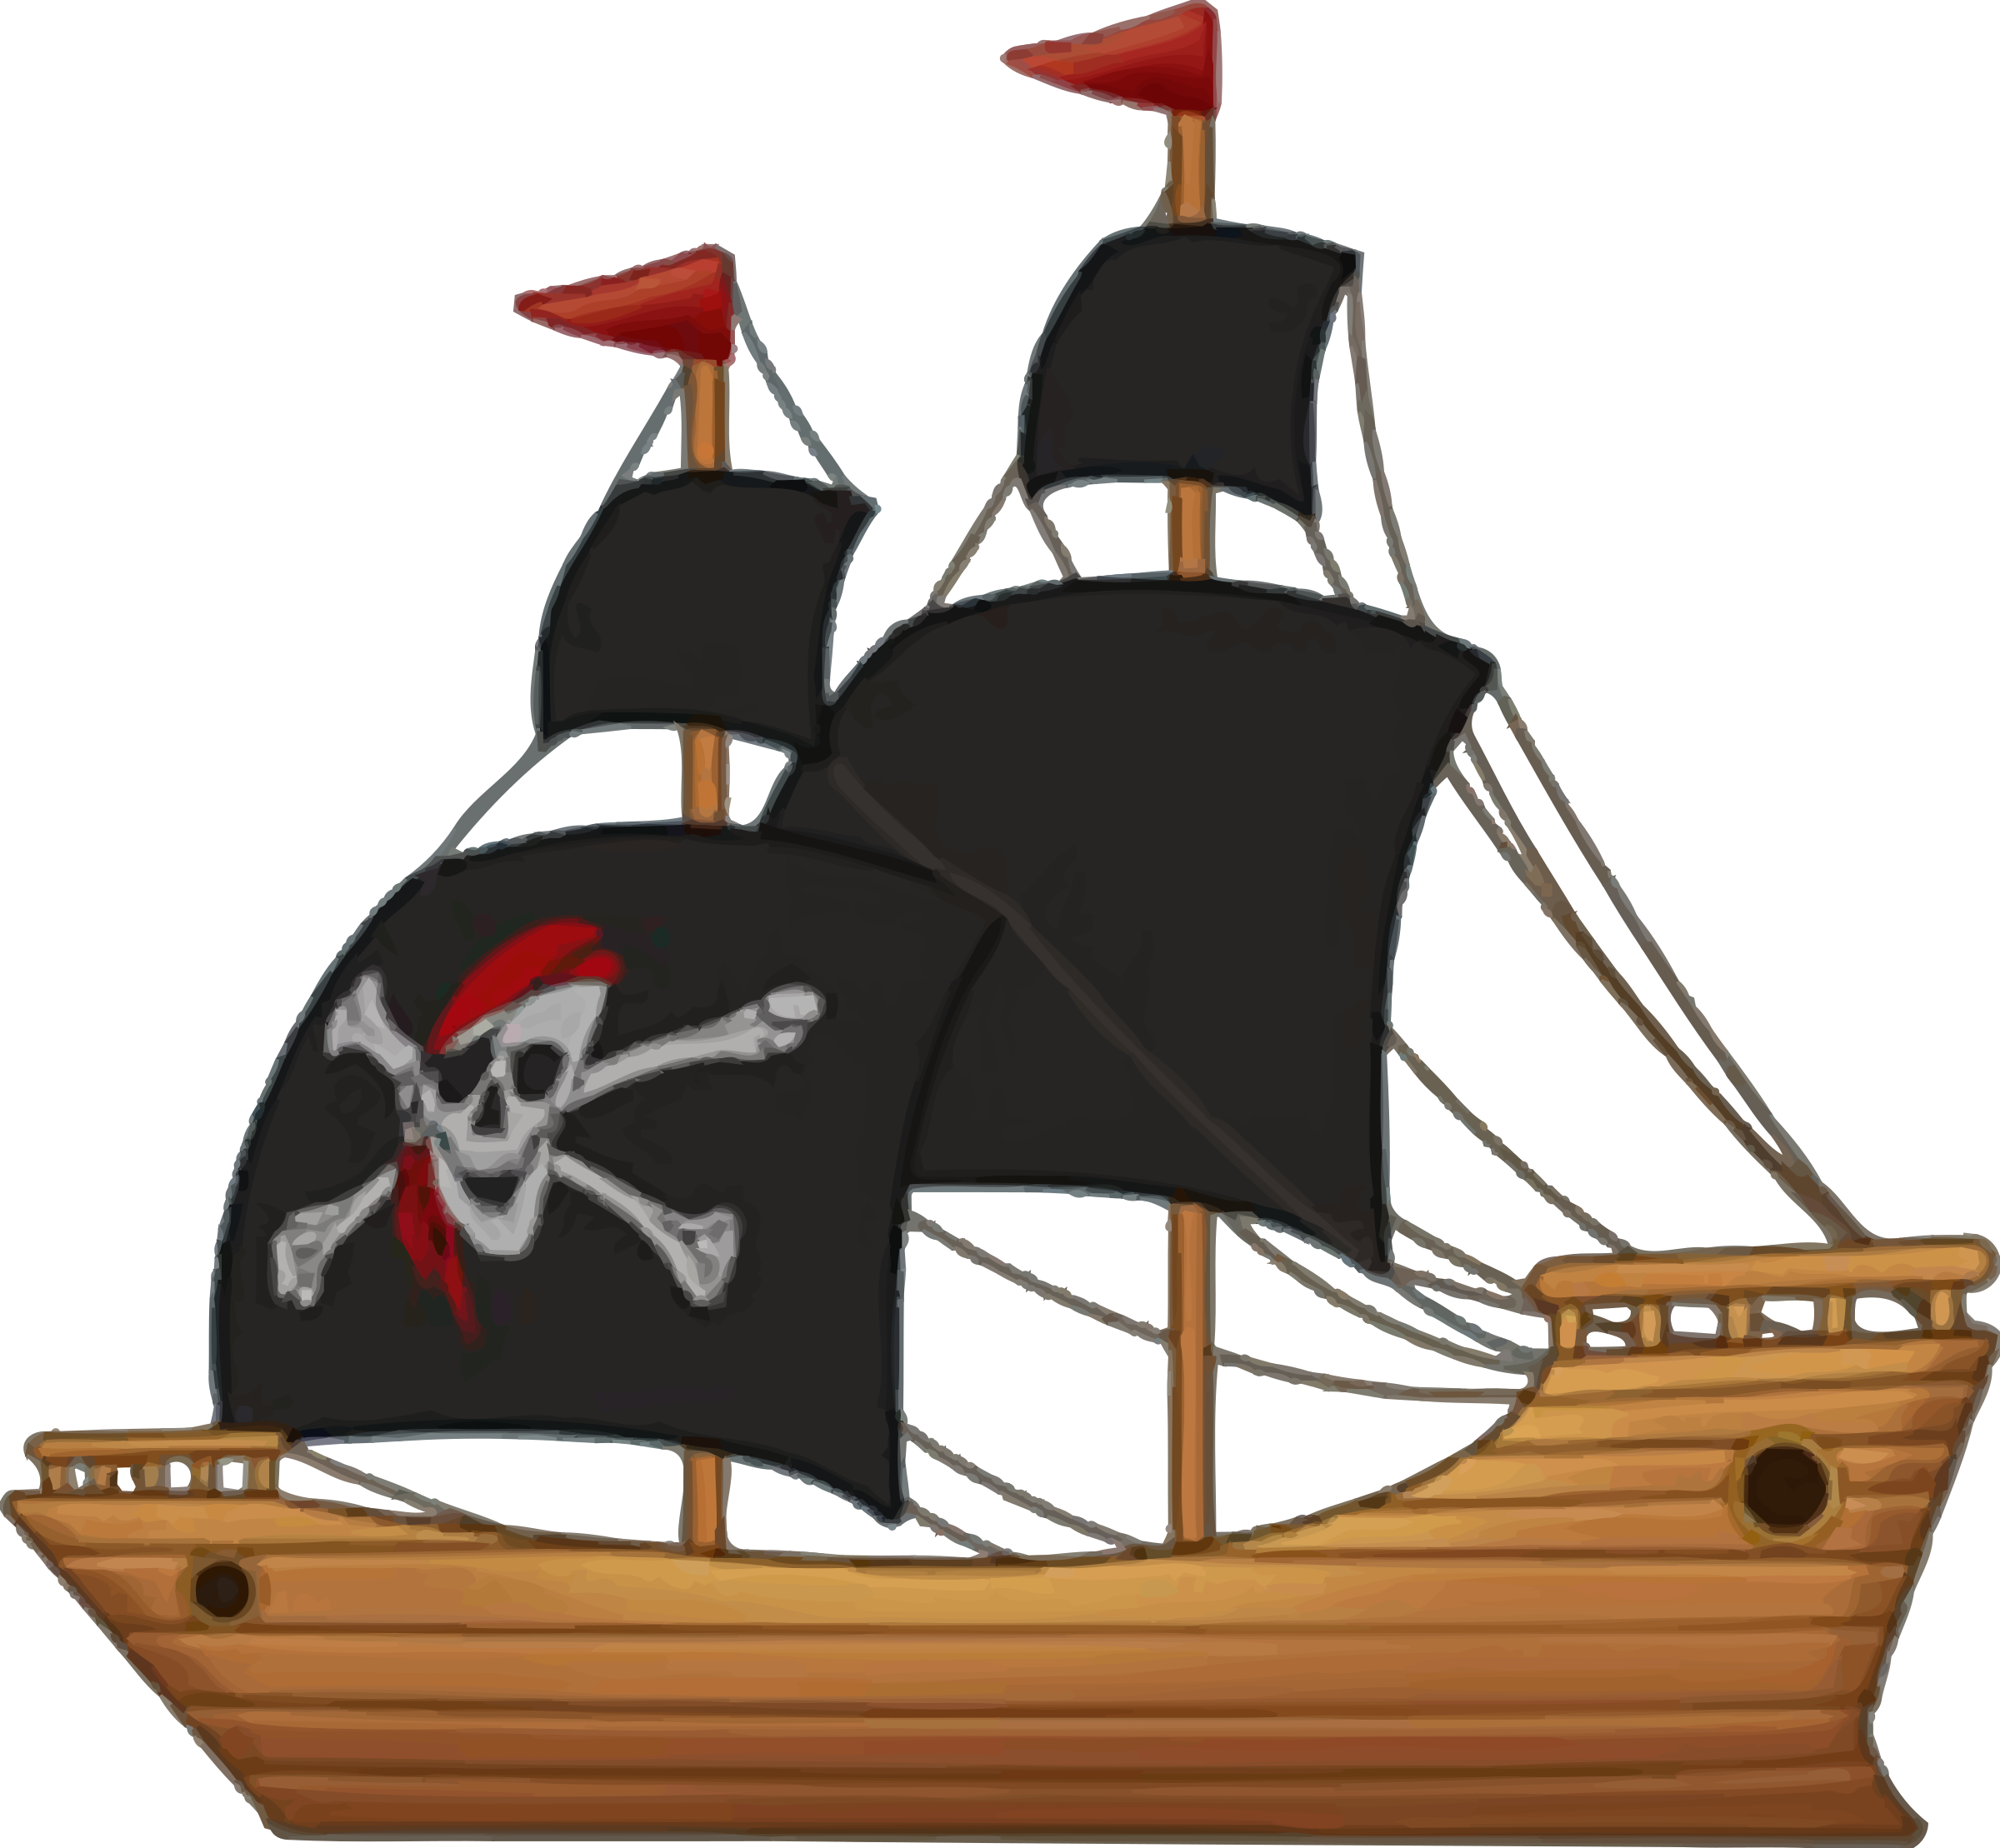 Stop ship clipart graphic freeuse stock Pirate Ship Vector Clipart image - Free stock photo - Public Domain ... graphic freeuse stock